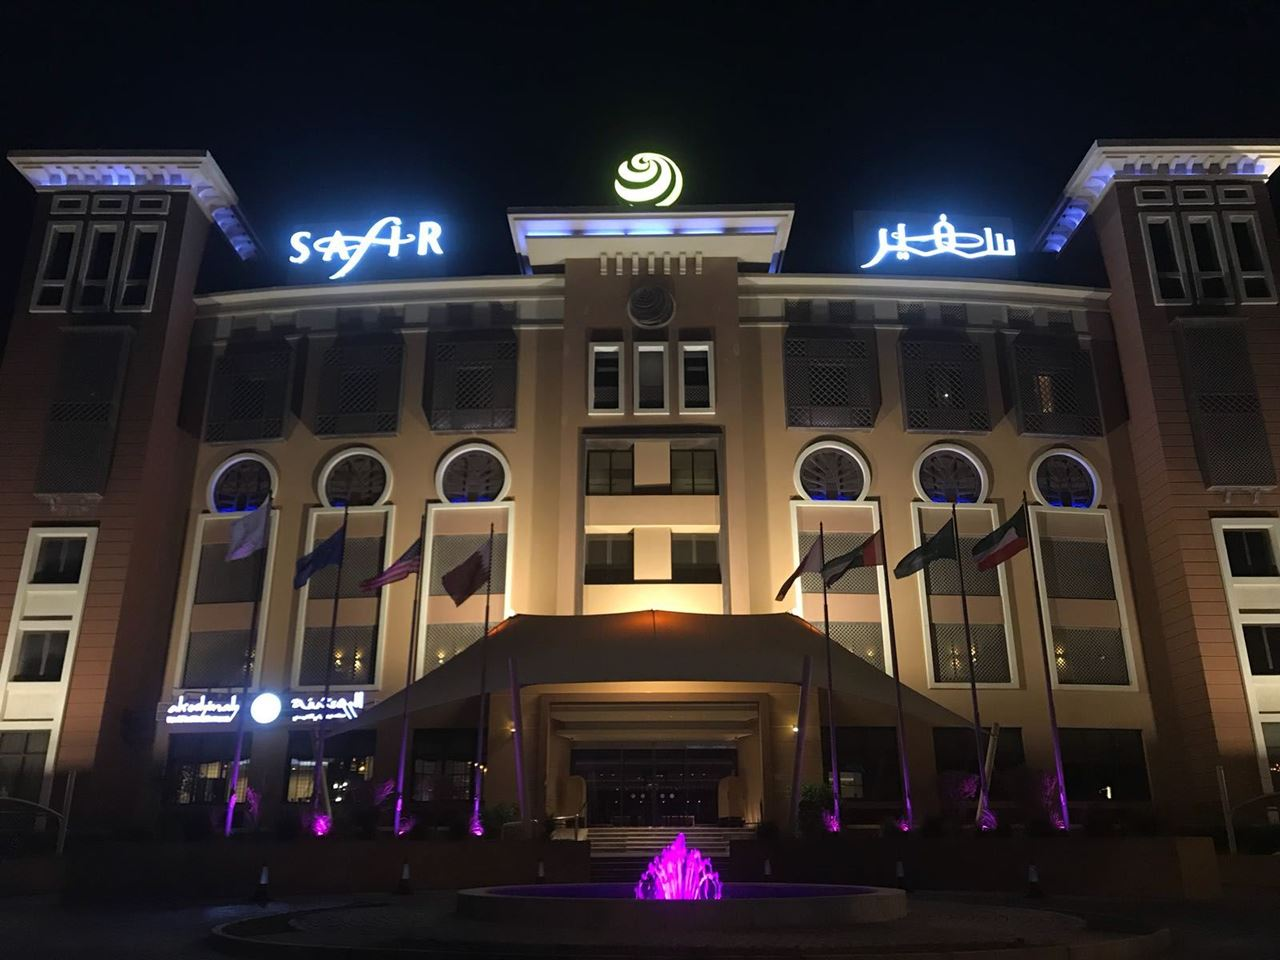 Safir Fintas Kuwait Hotel participated in Breast Cancer Awareness Campaign